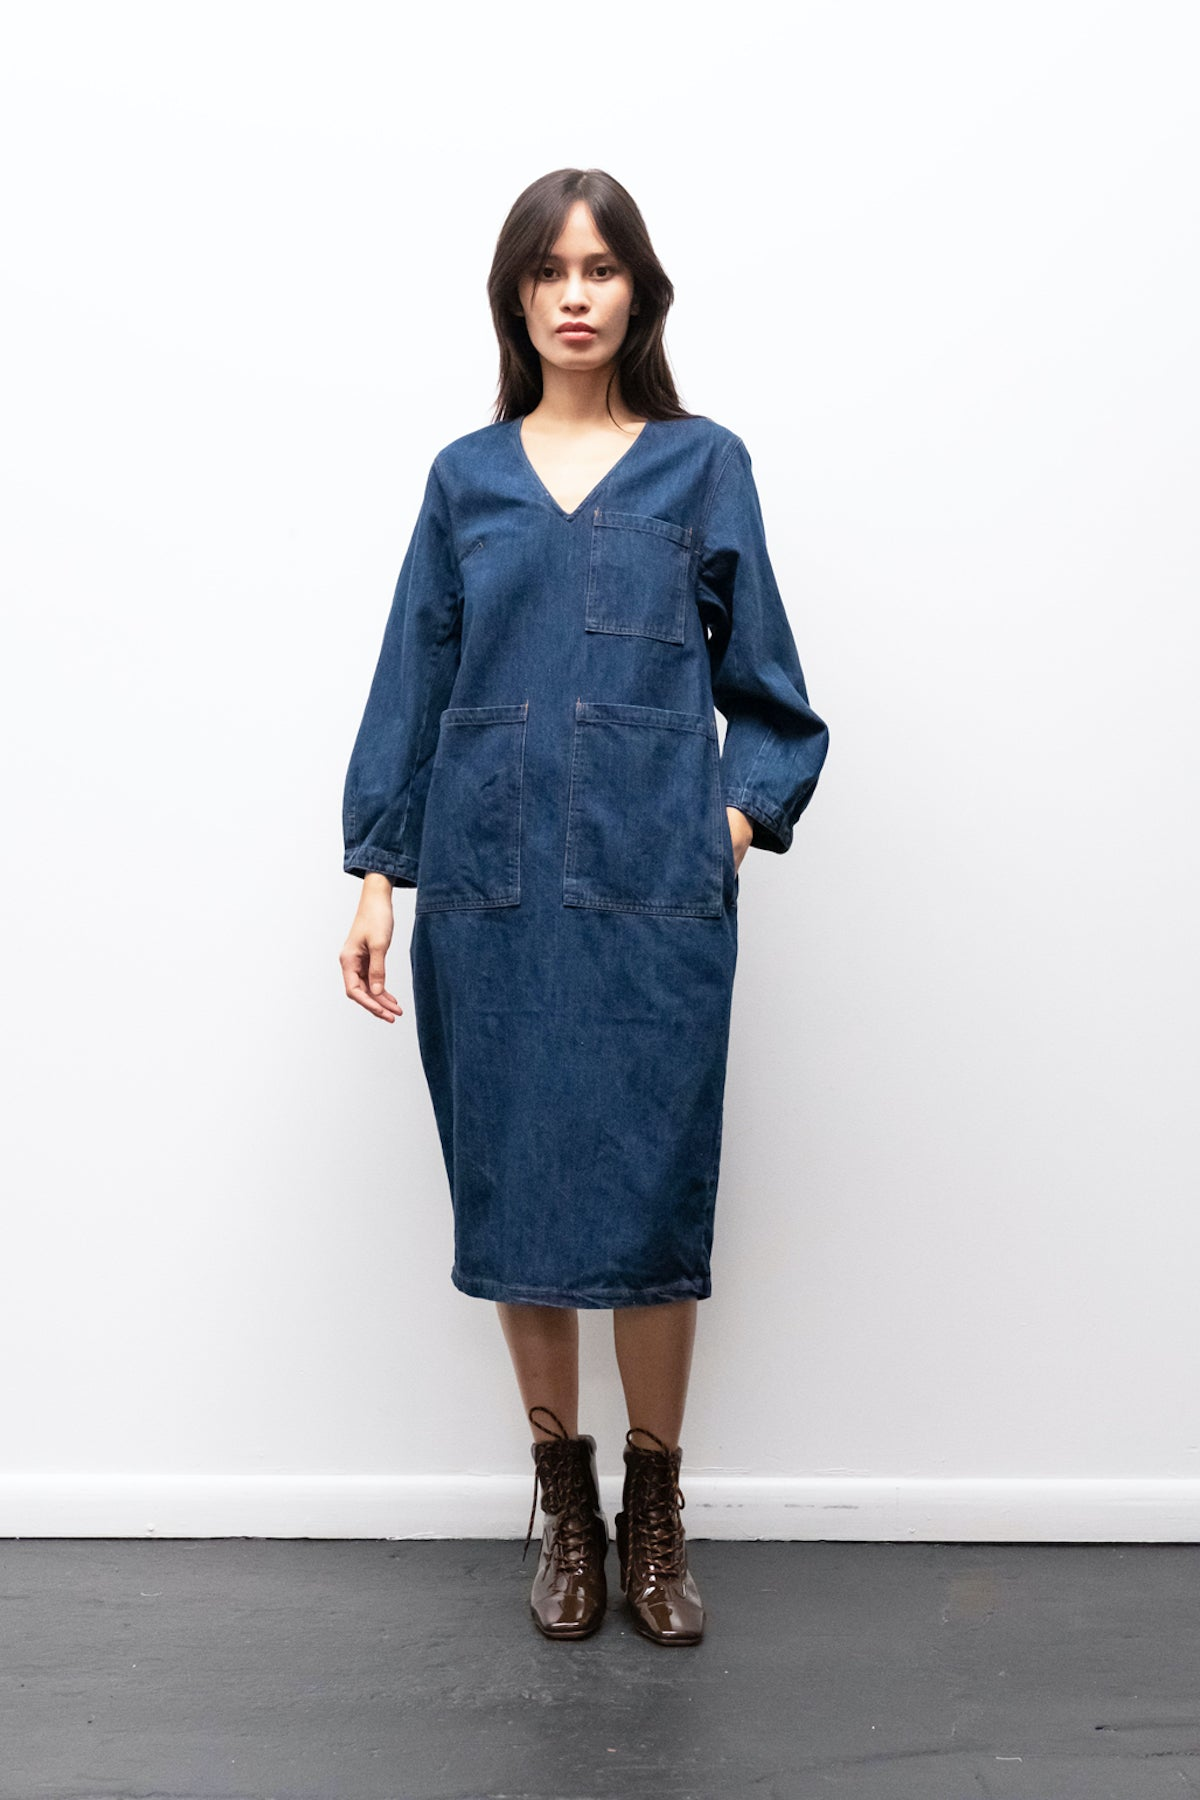 LF Markey Merlon Dress in Indigo